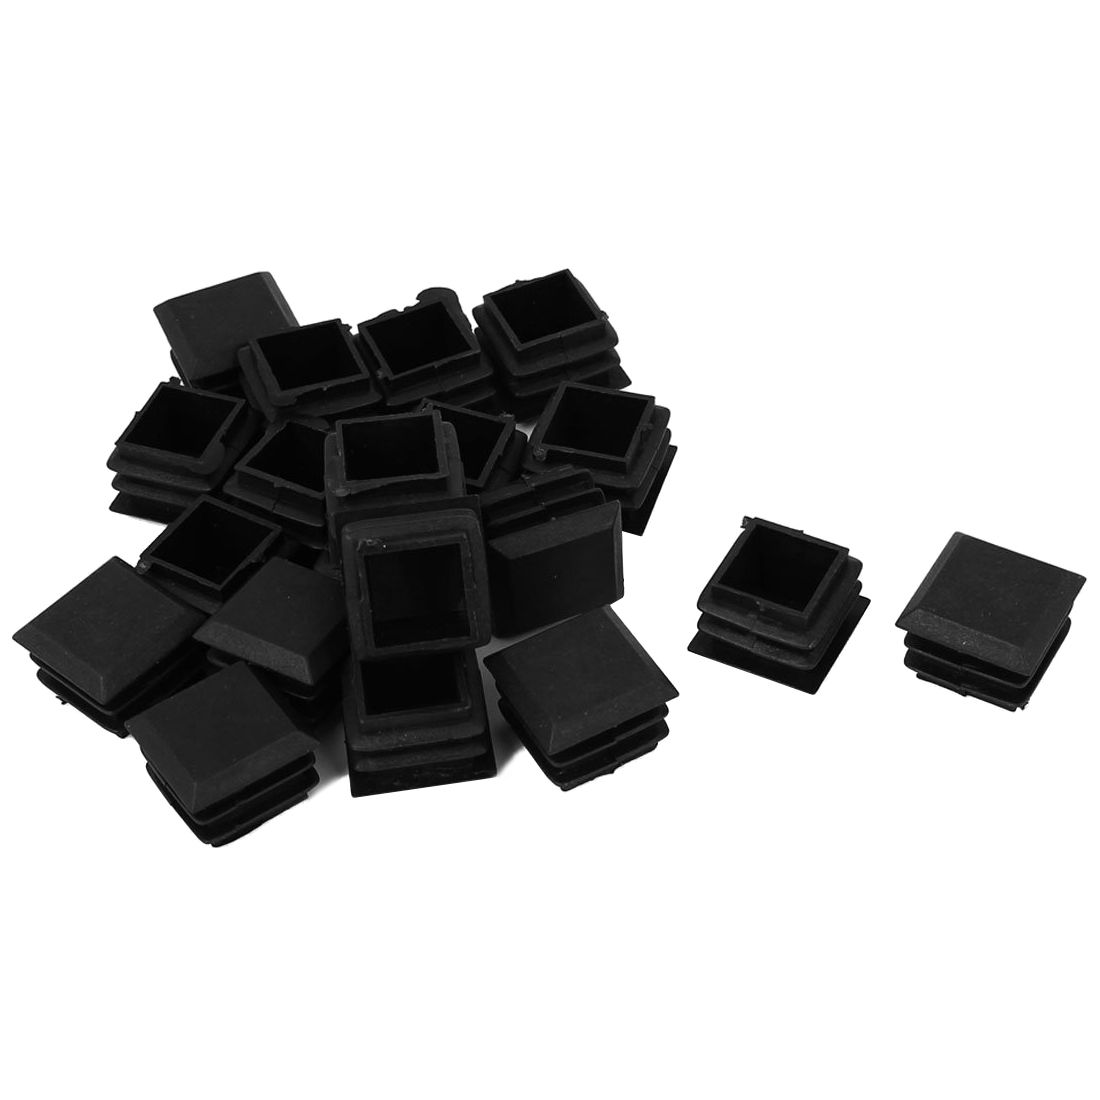 Practical Boutique 20 Pcs Plastic Office Chair Table Leg Glide Cap Tubing Pipe Insert 25mm X 25mm